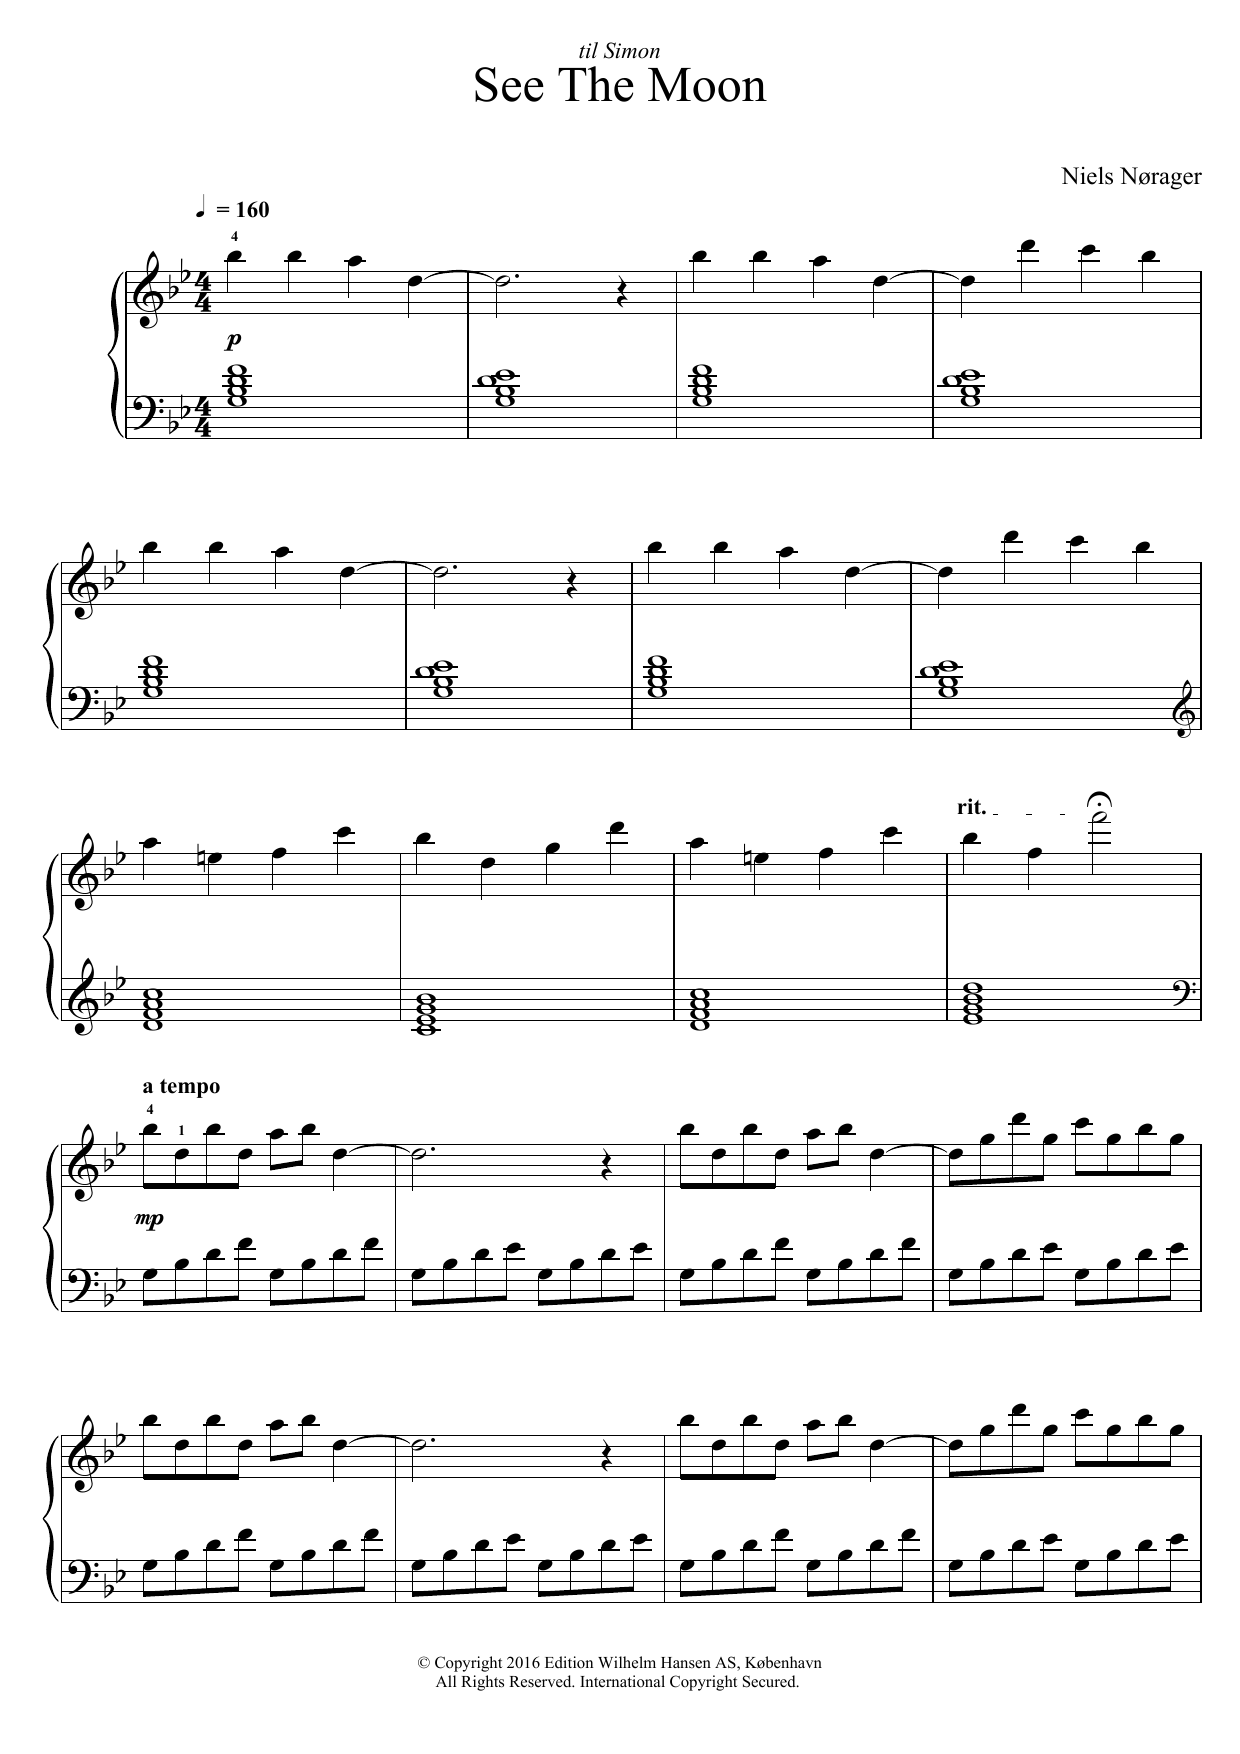 Niels Nørager See The Moon sheet music notes and chords. Download Printable PDF.